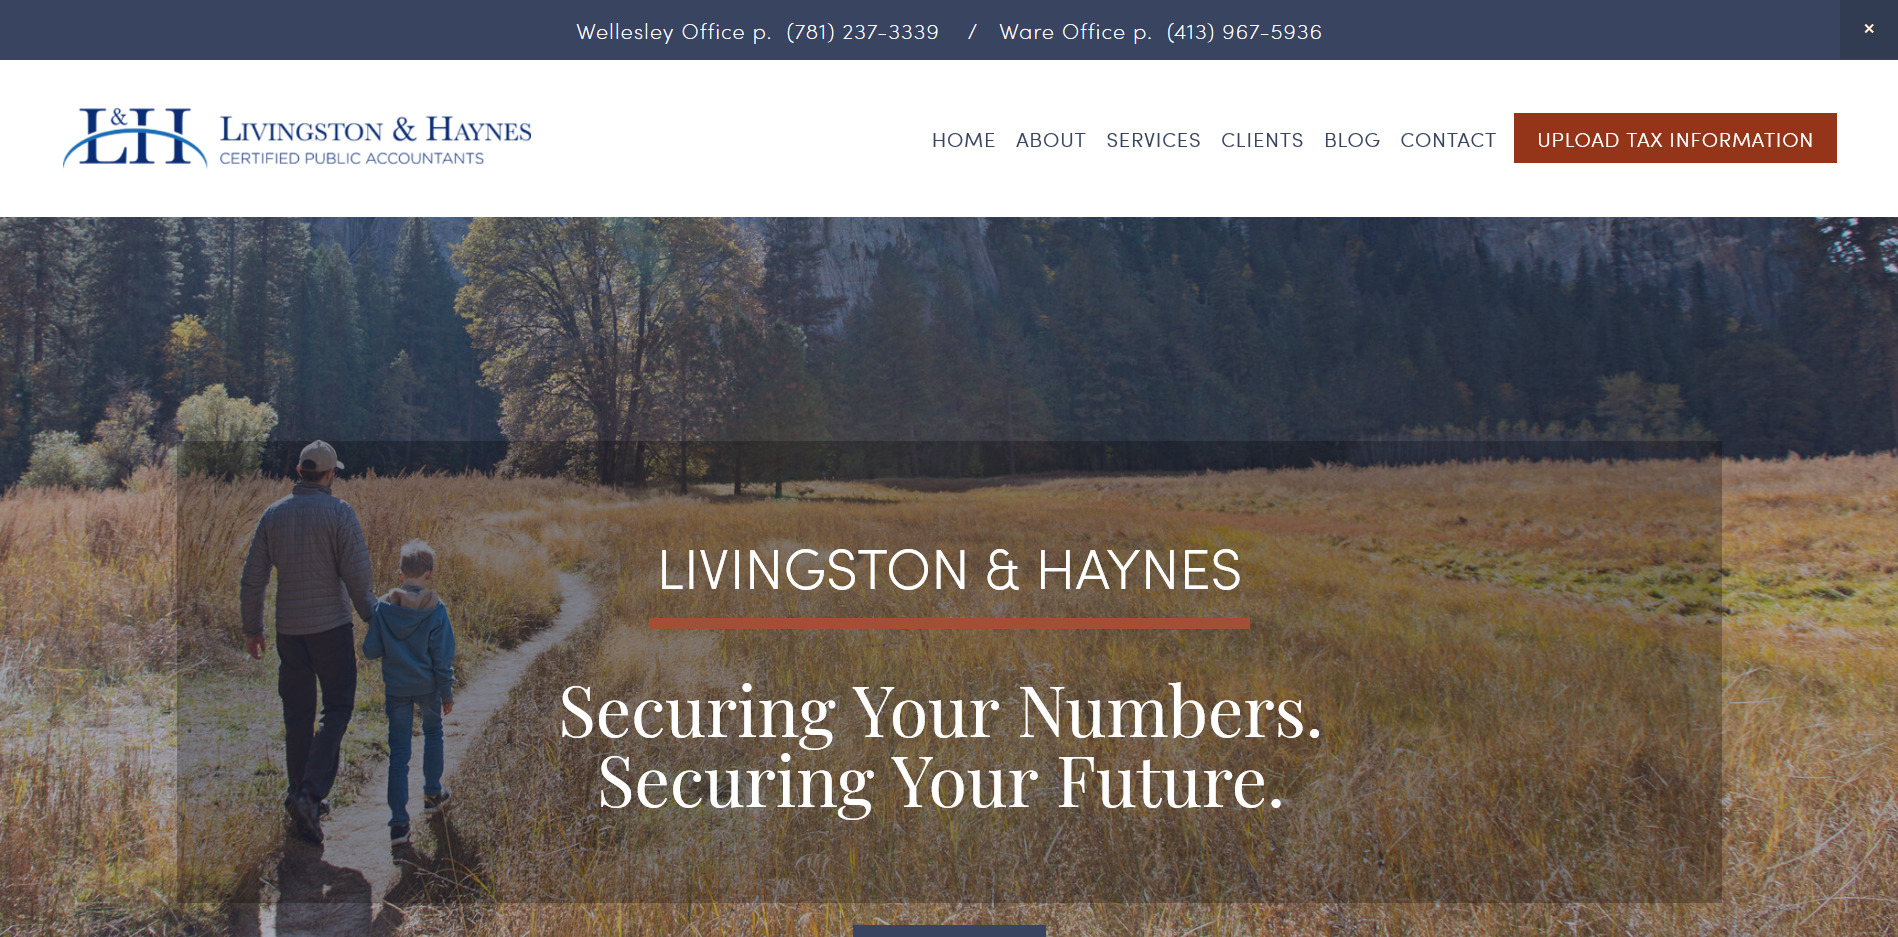 Livingston & Haynes